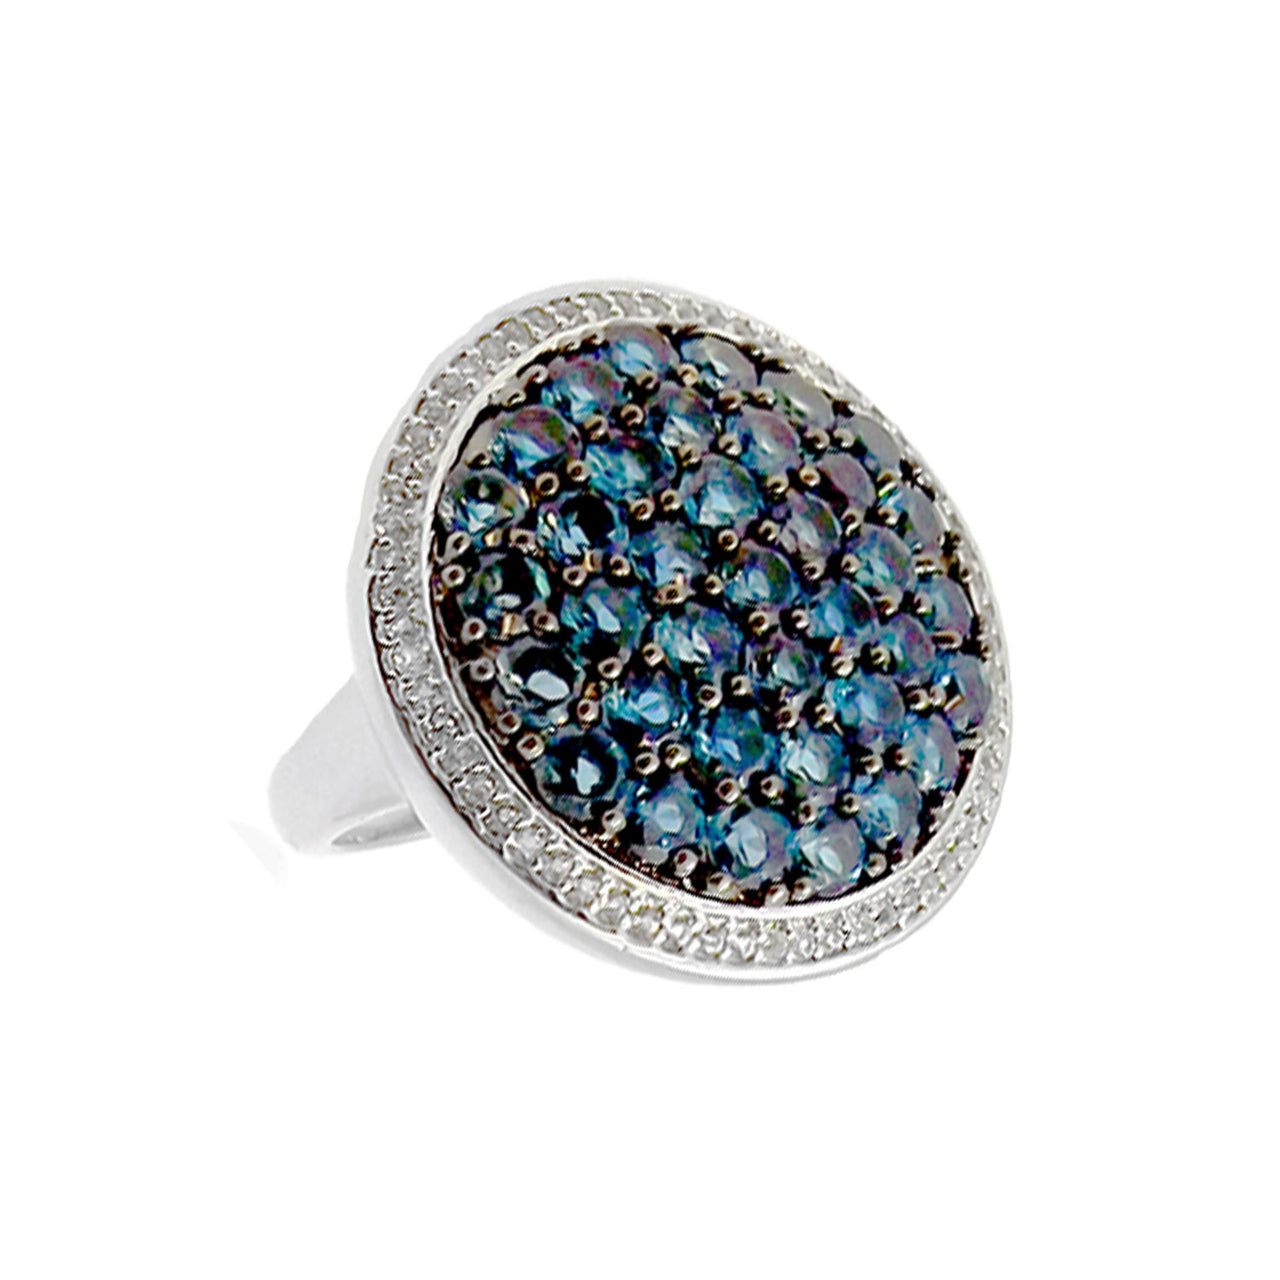 London Blue Circlet Ring